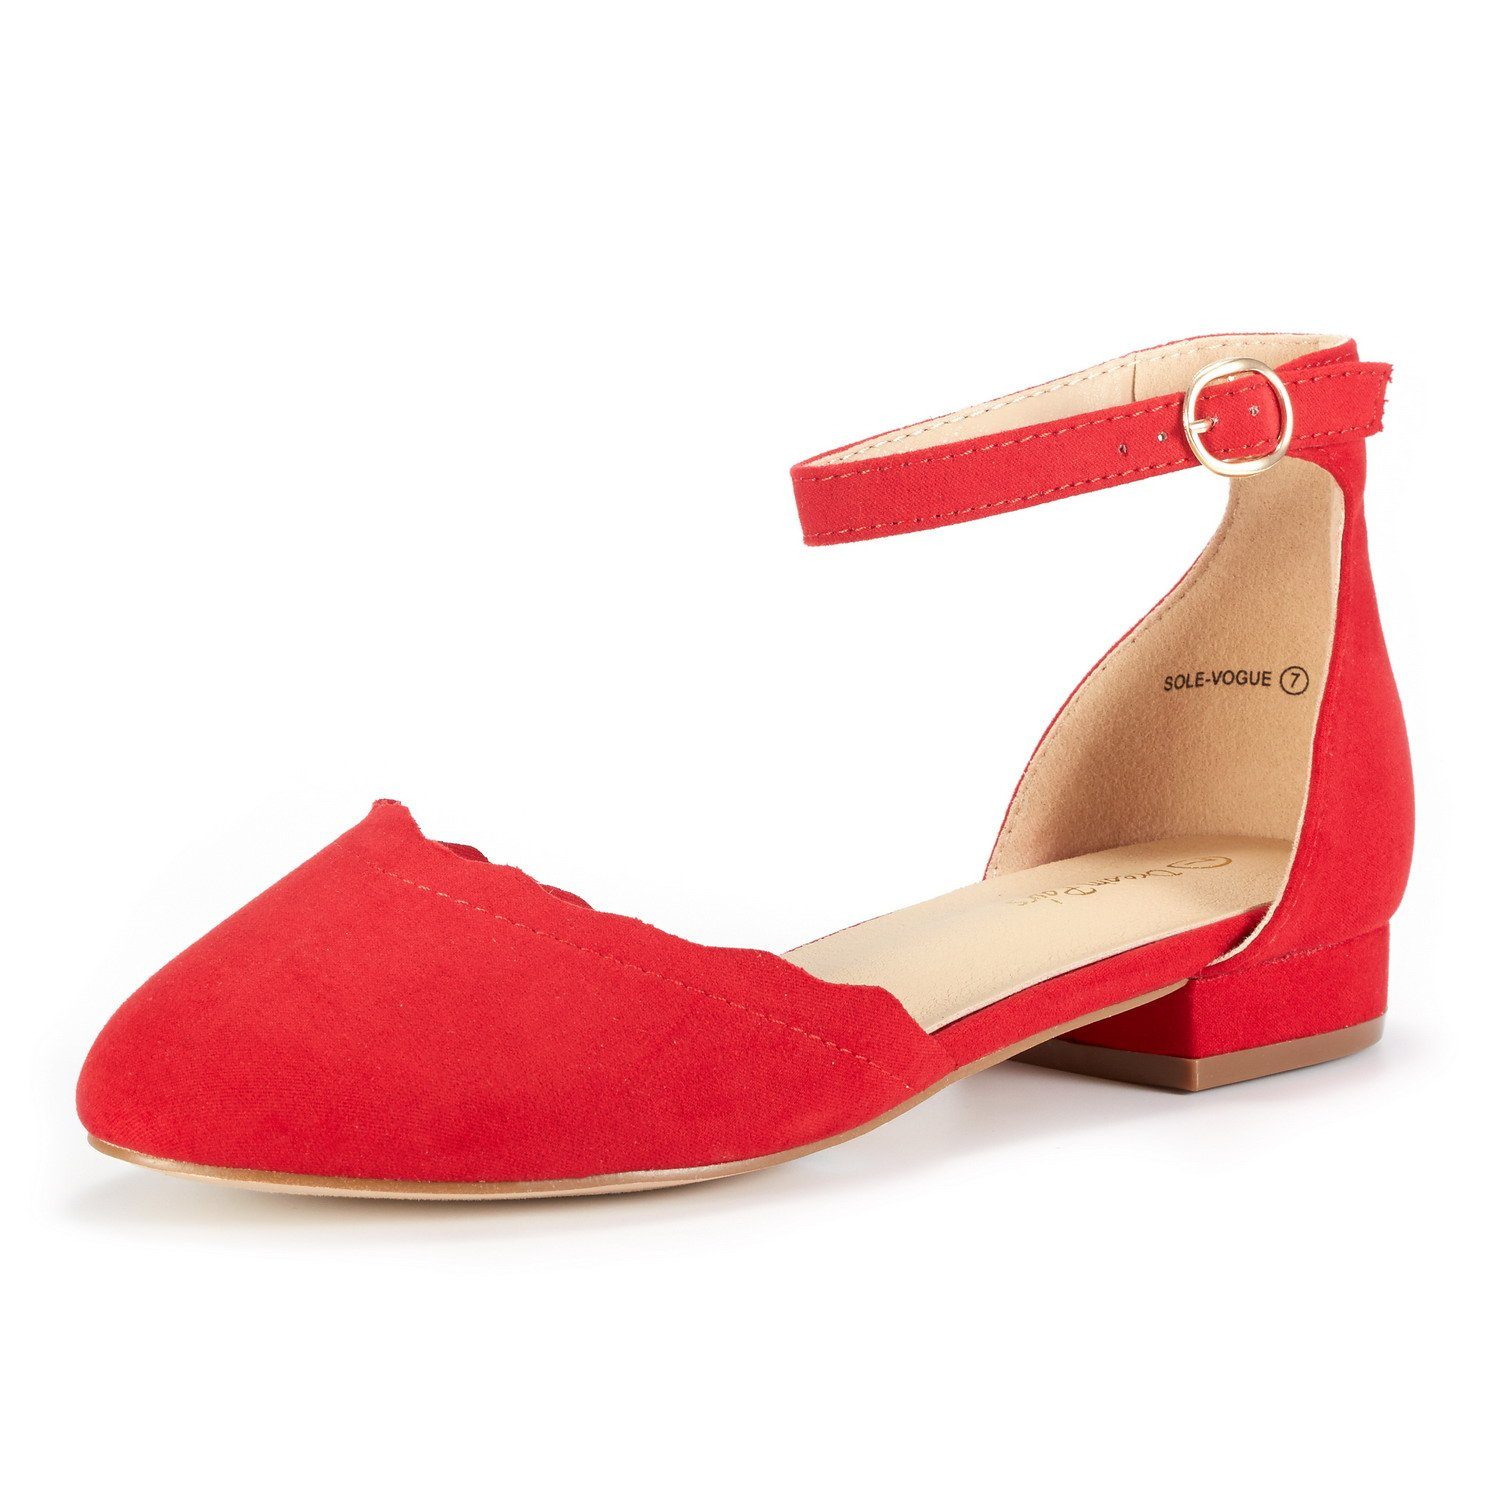 DREAM PAIRS Women's Sole_Vogue RED Fashion Low Stacked Ankle Straps Flats Shoes Size 9.5 M US